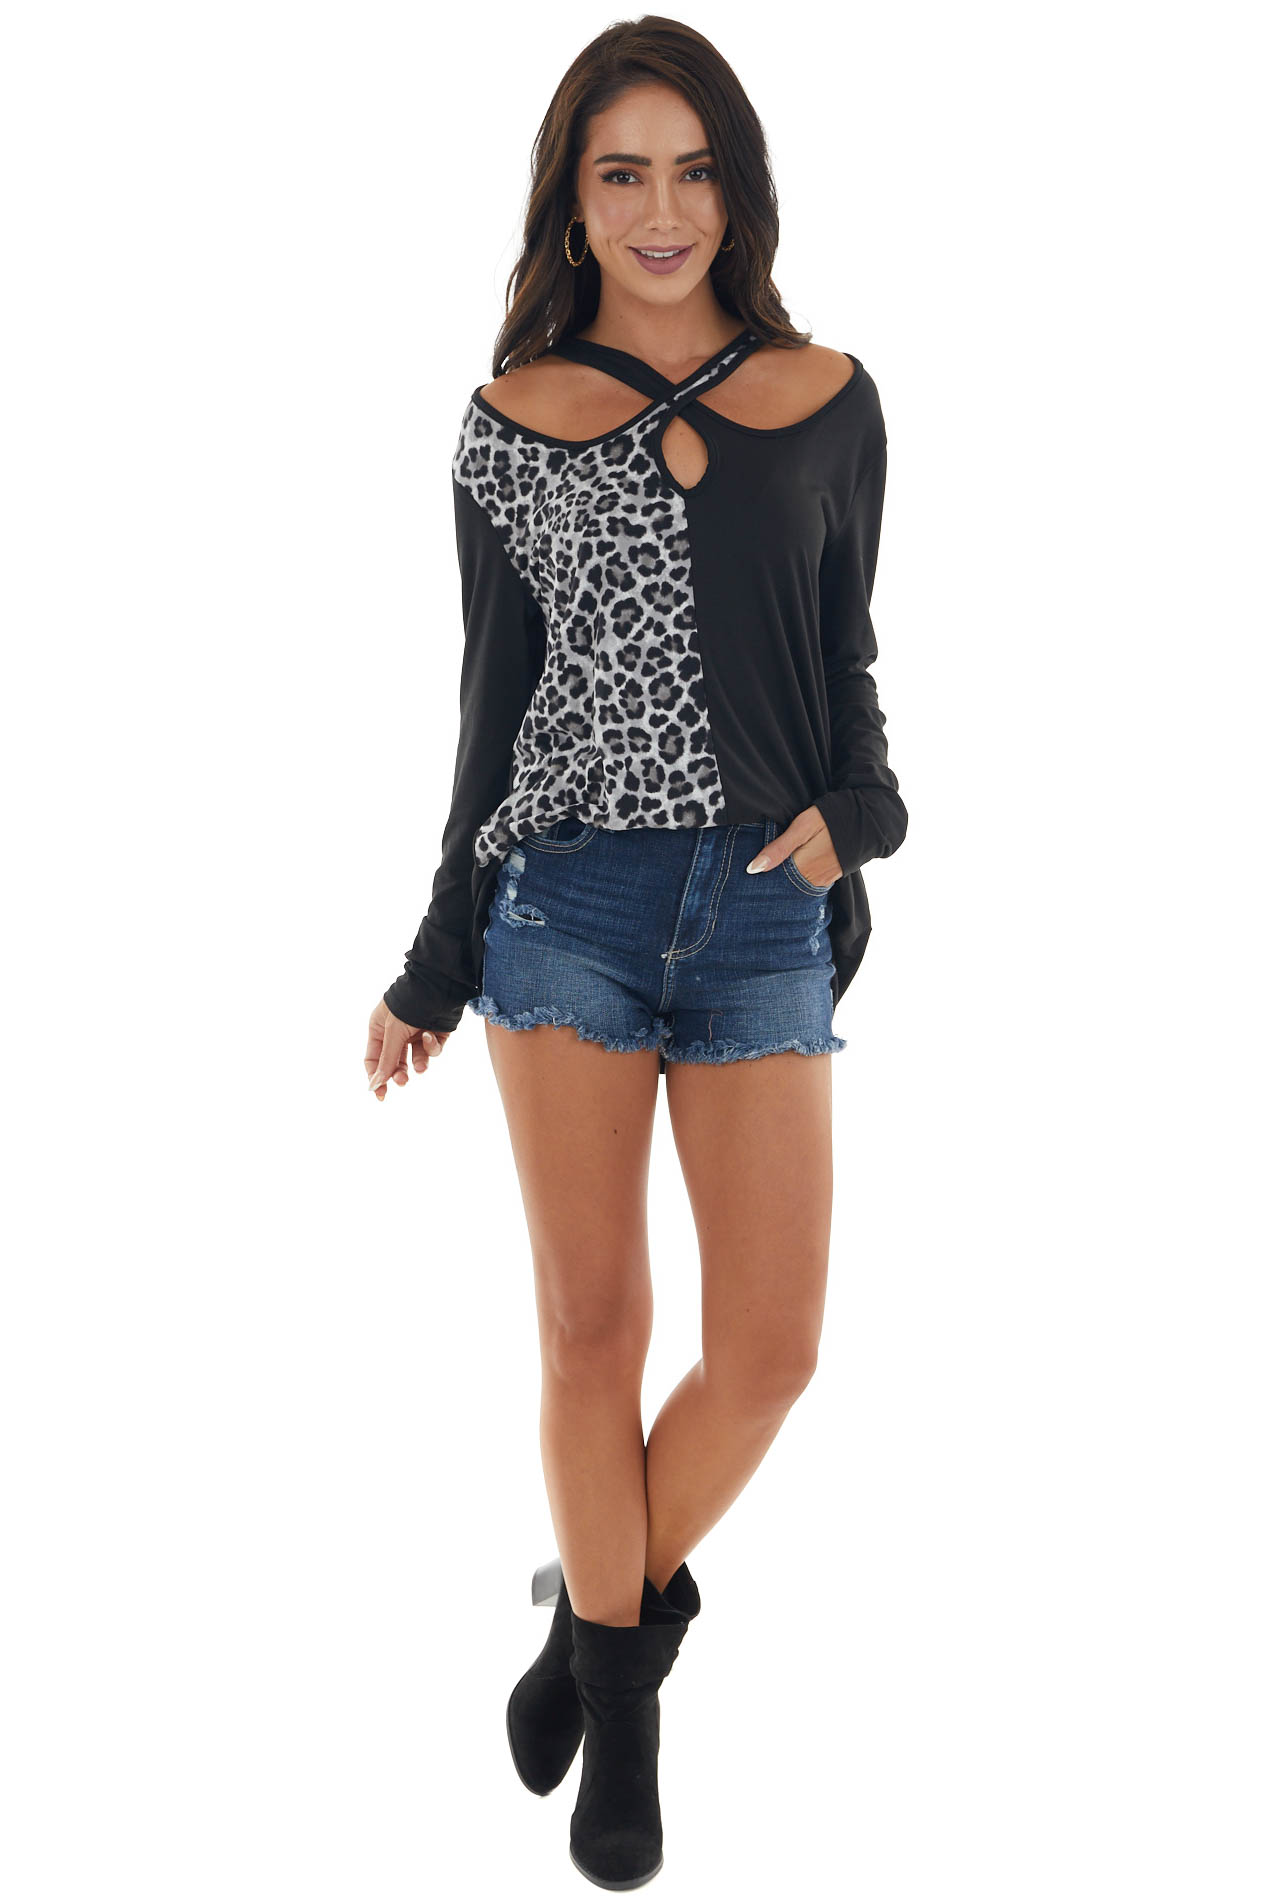 Black and Leopard Keyhole Cutout Top